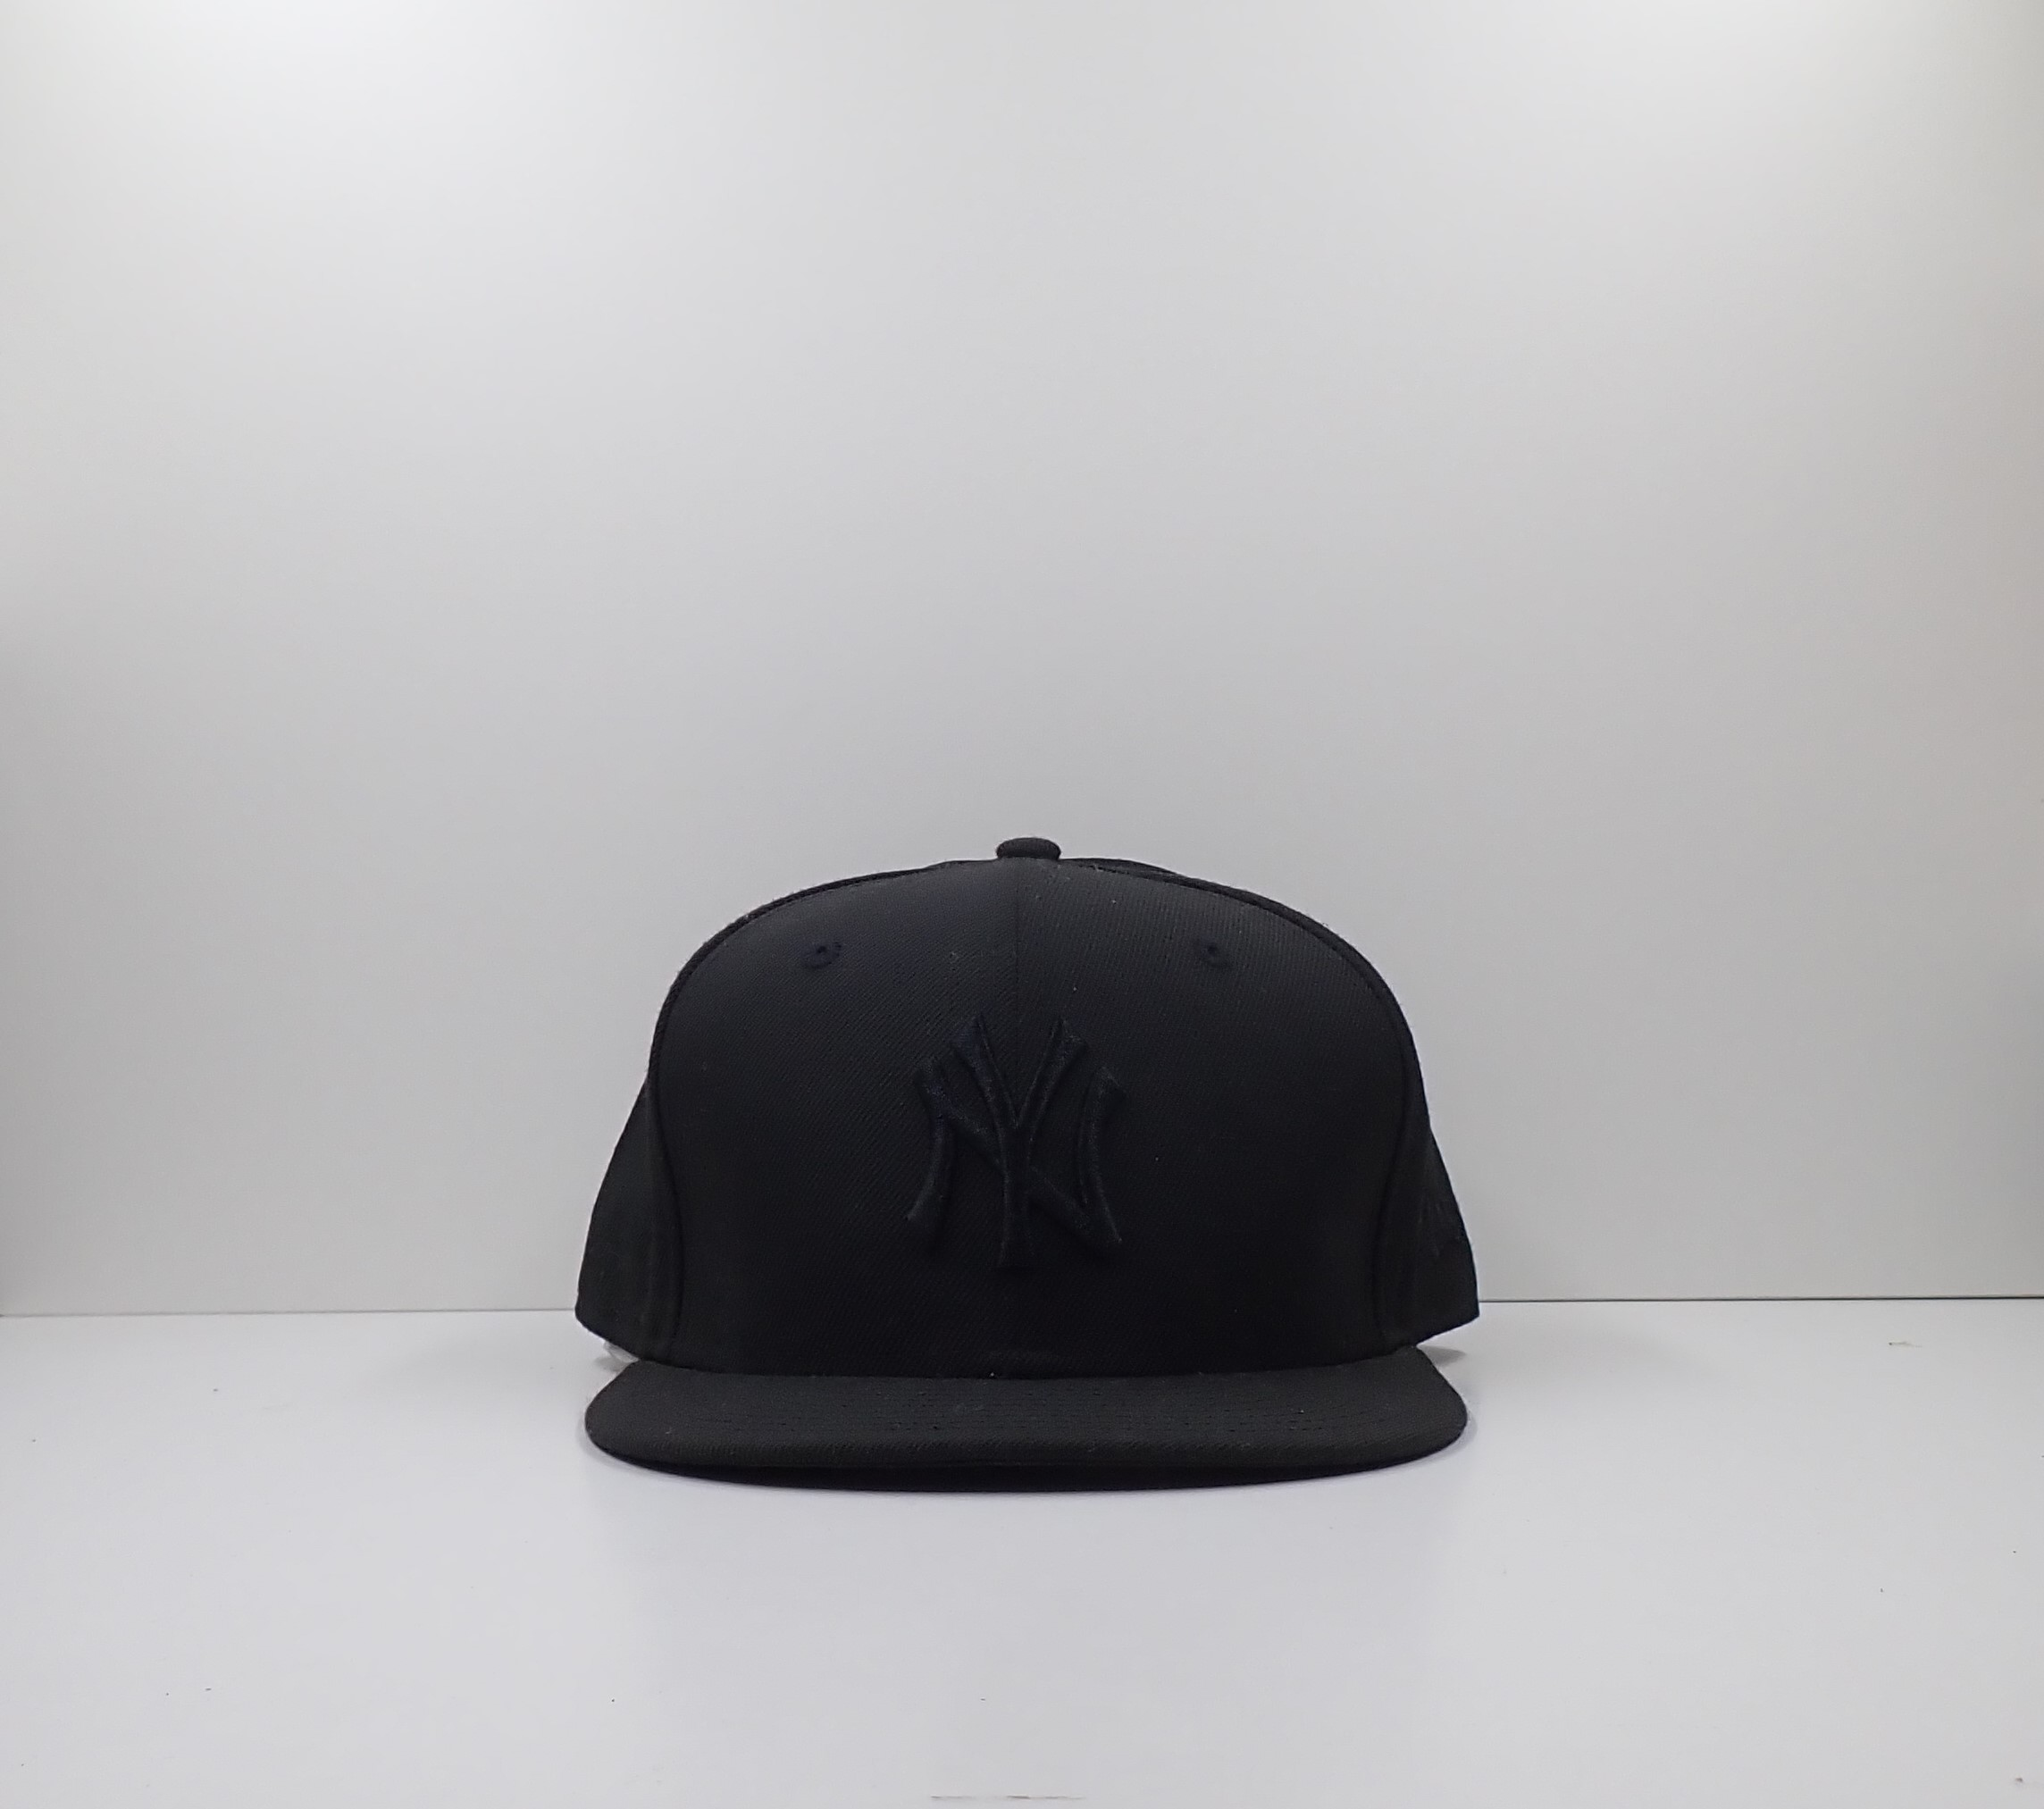 New York Yankees All Black 59Fifty New Era Cap